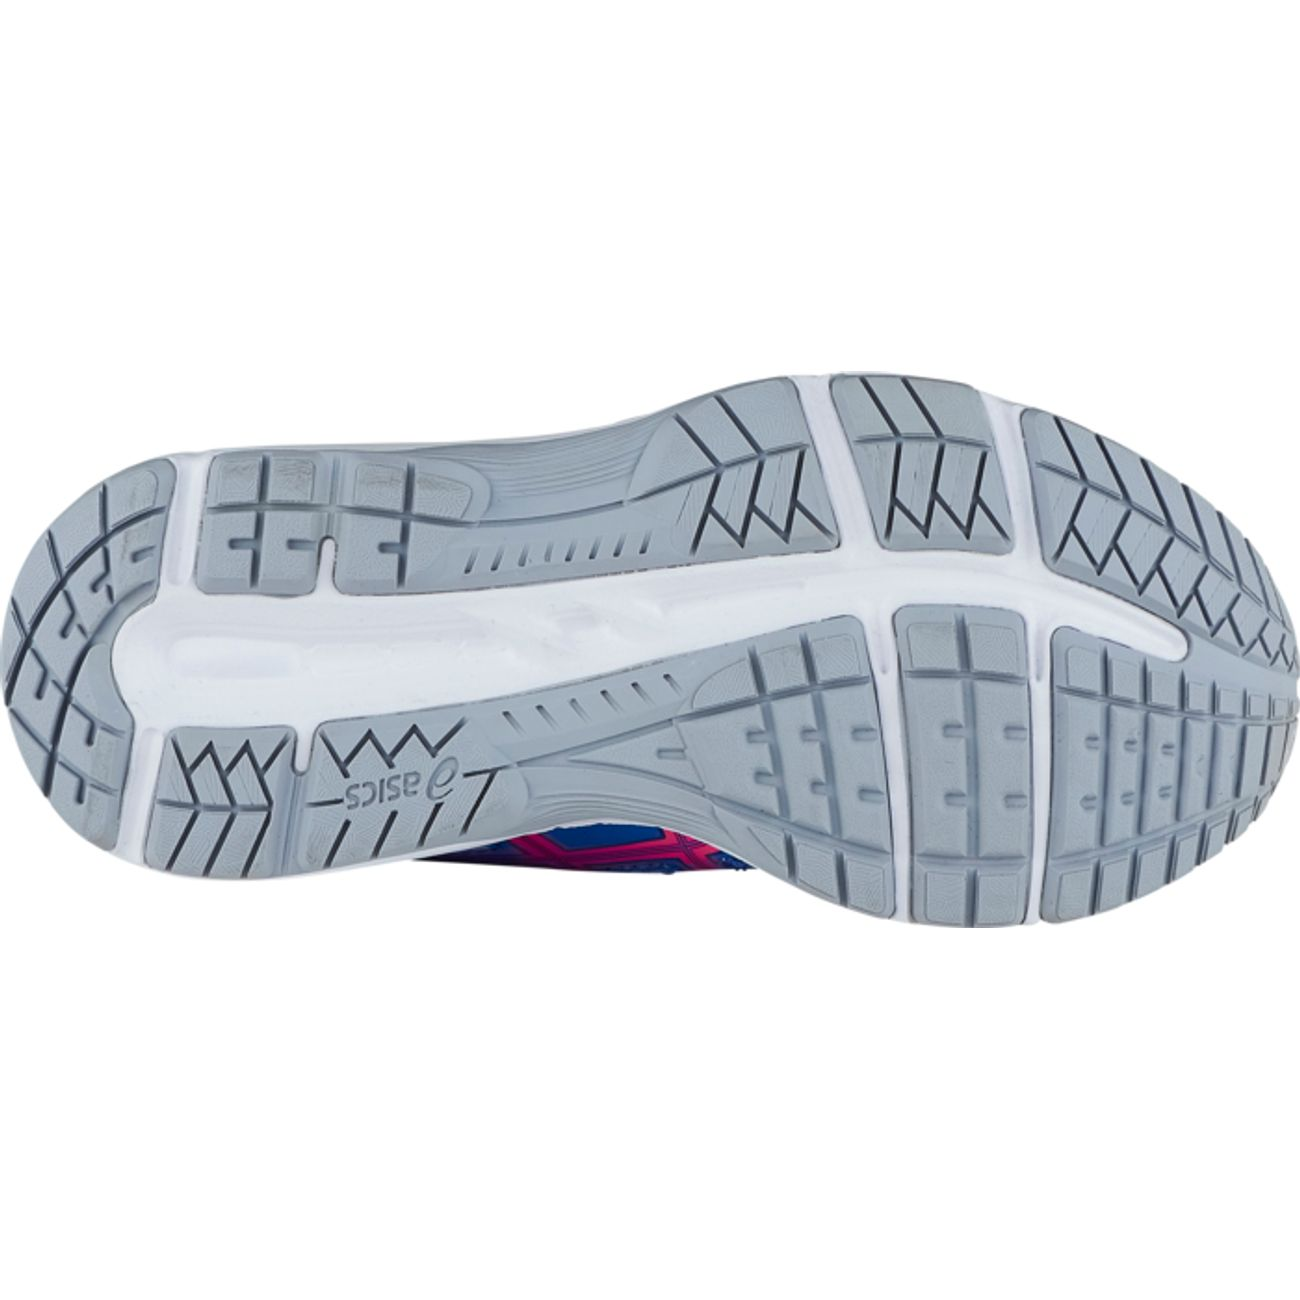 Asics Gel Basses Vlc Contend Chaussures Loisirs Fille fb6YgI7yvm